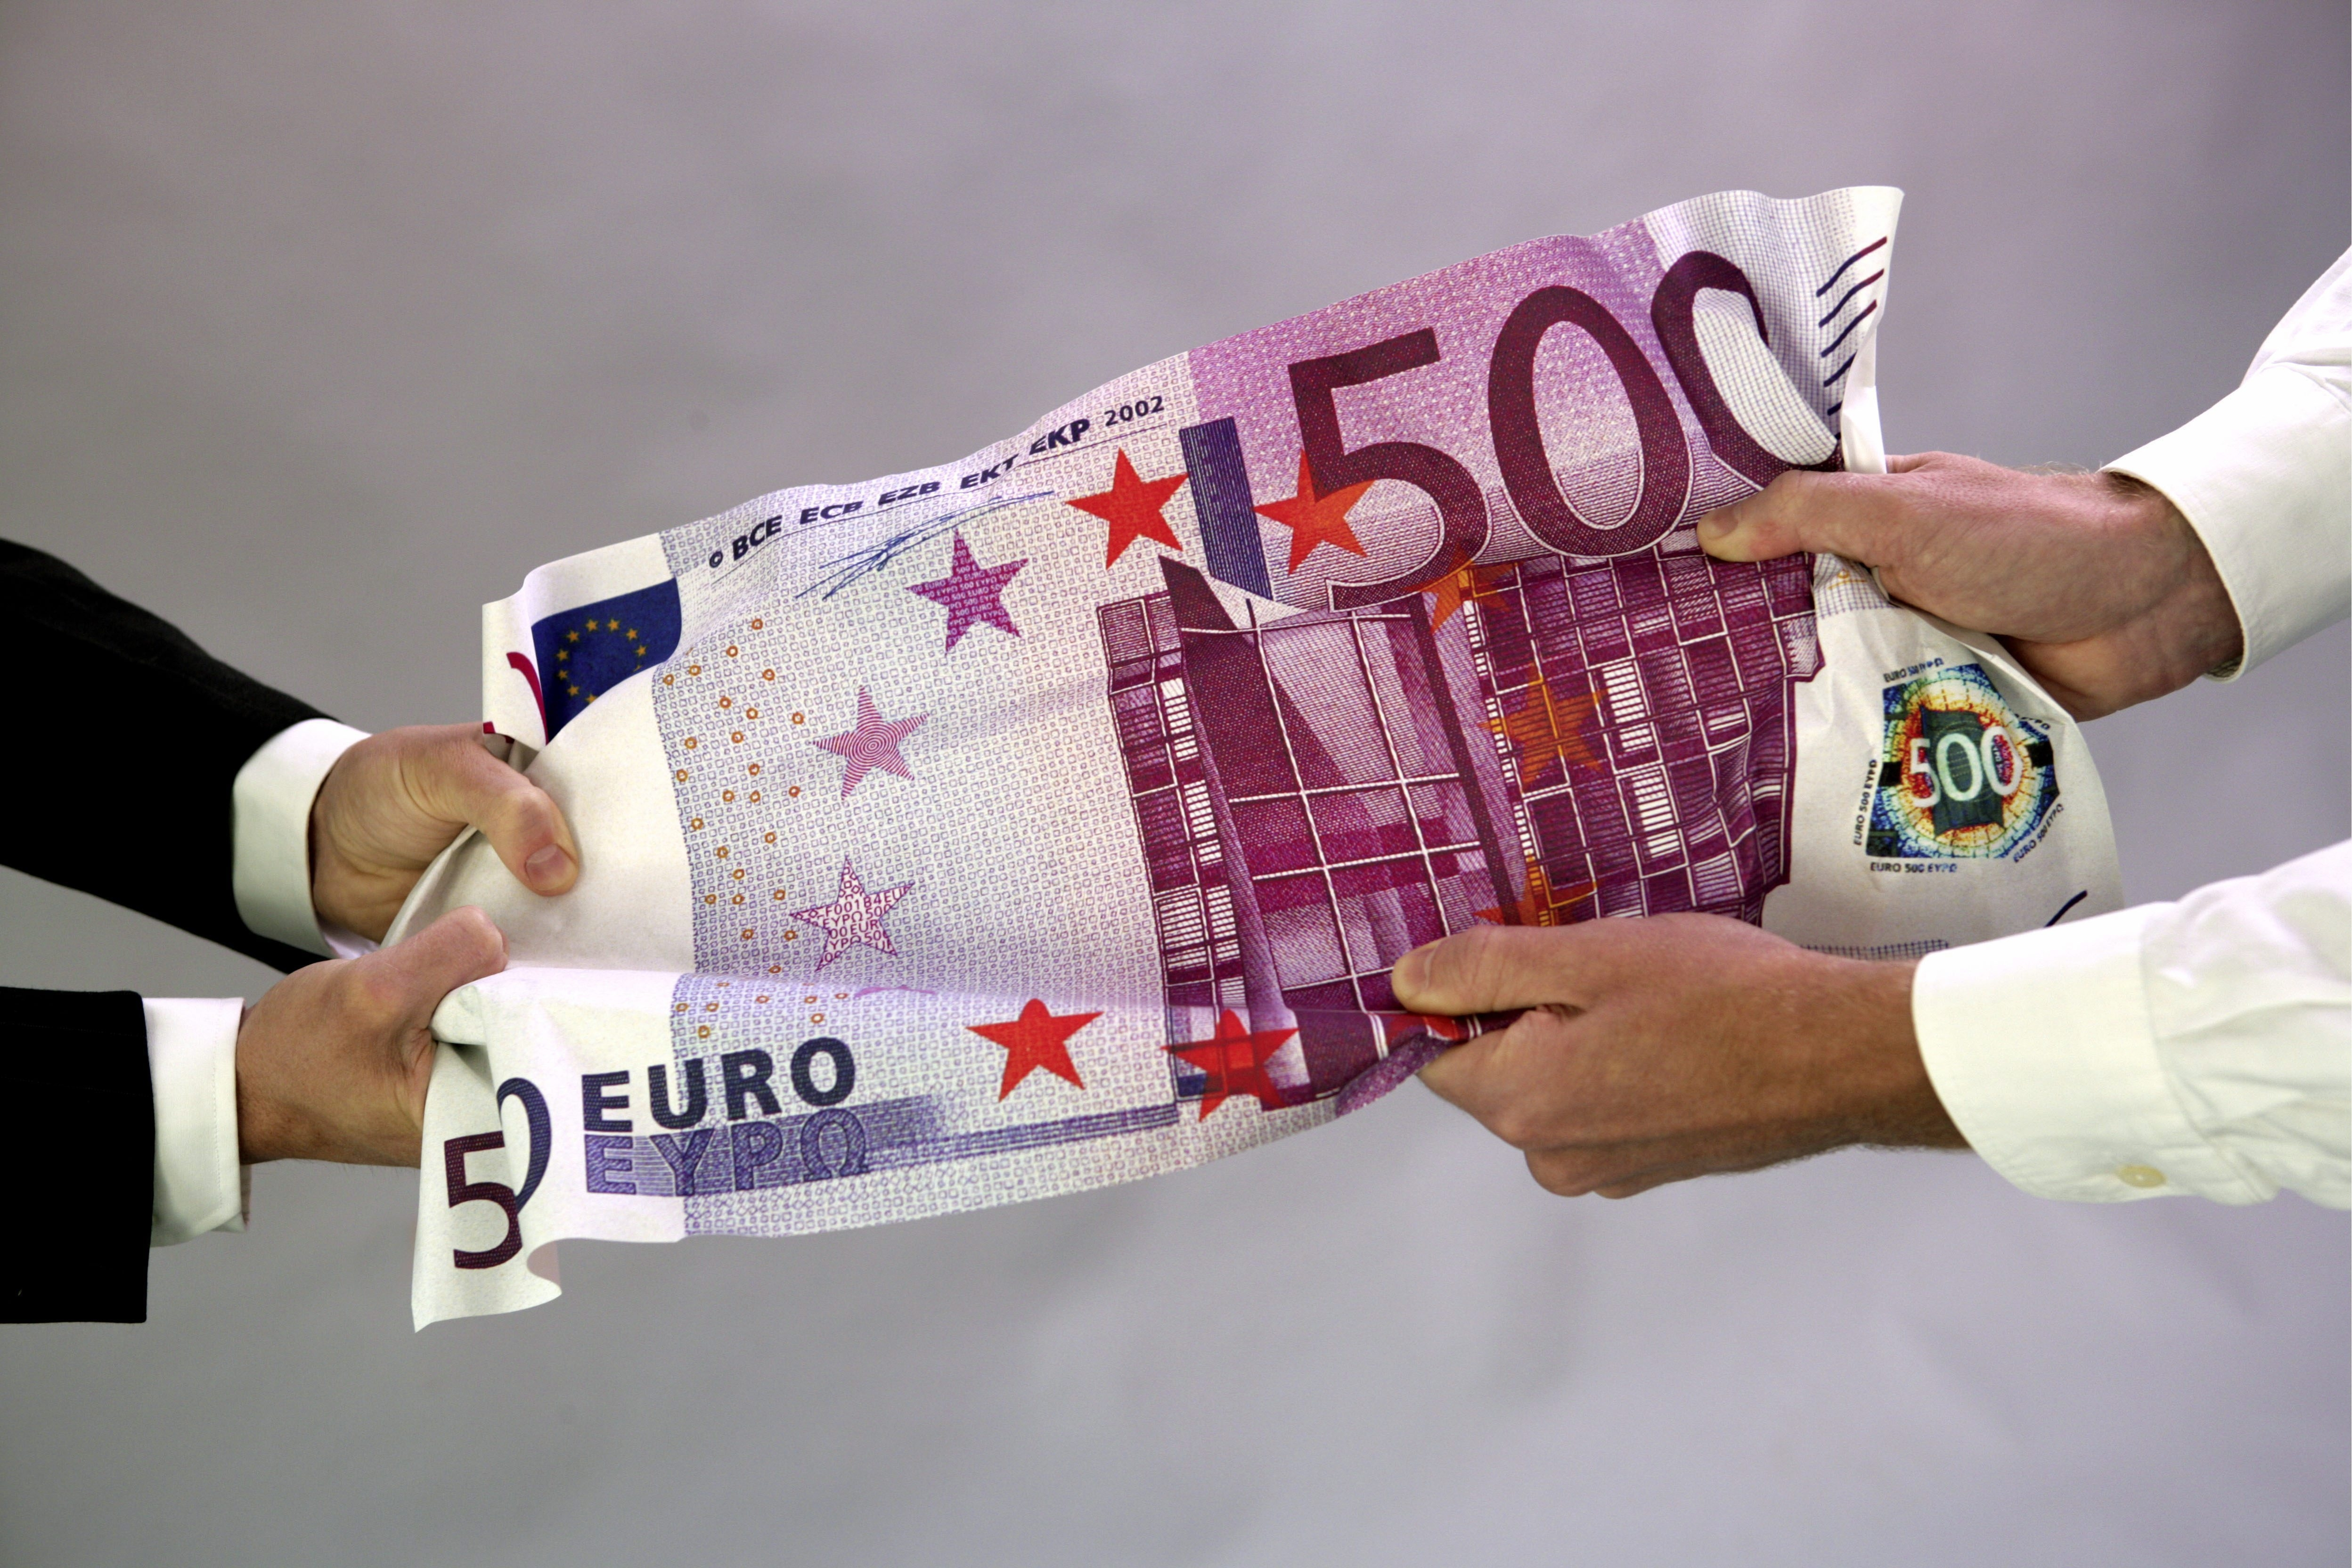 Hands pulling on 500 Euro banknote.